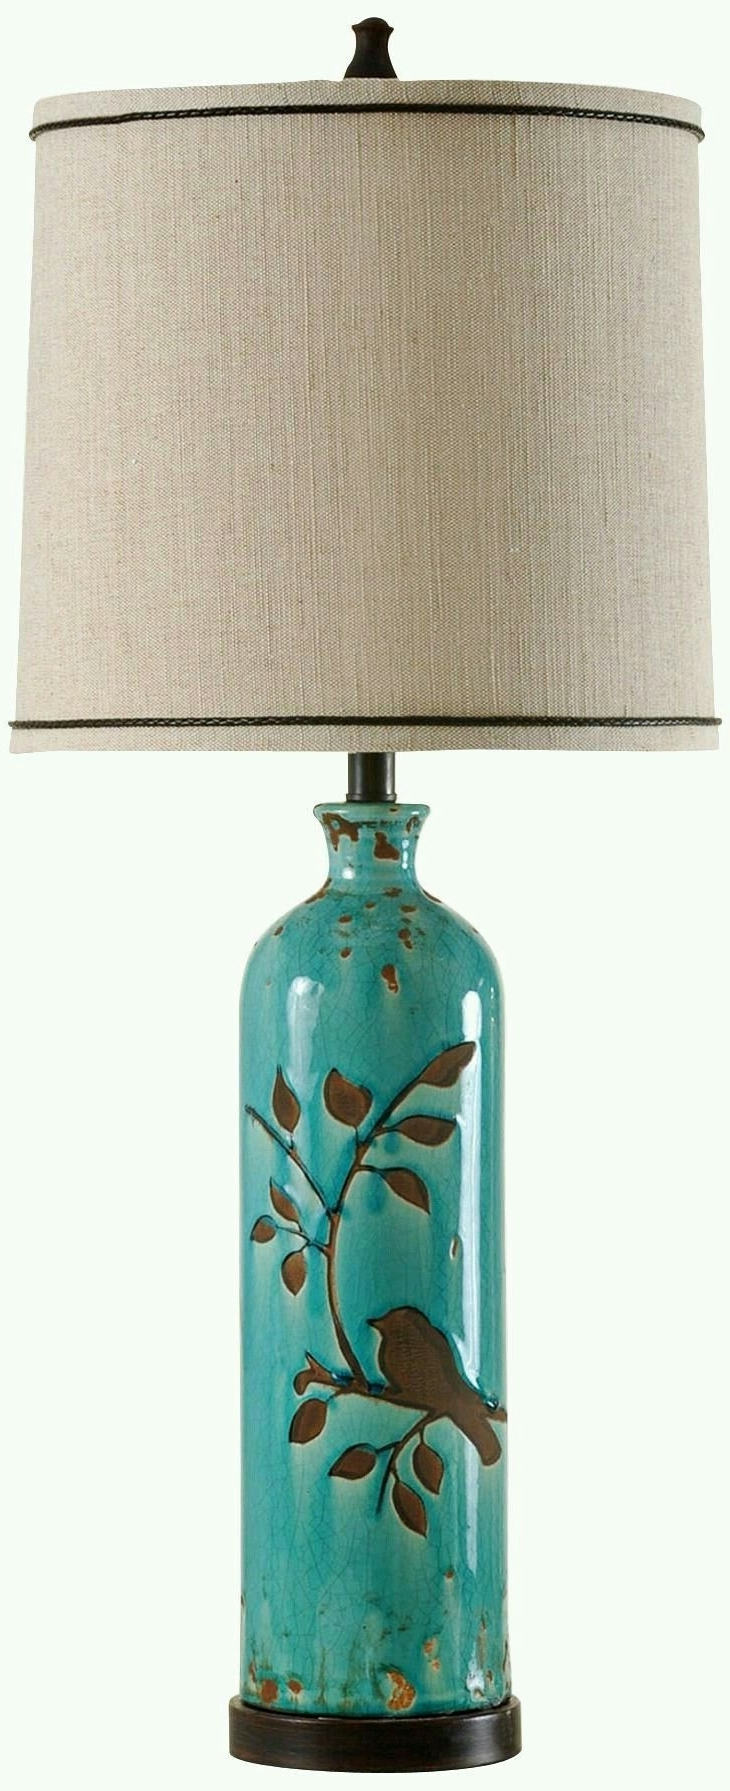 2018 Teal Living Room Table Lamps With Regard To Pinguzin Oz On Iki (View 4 of 15)